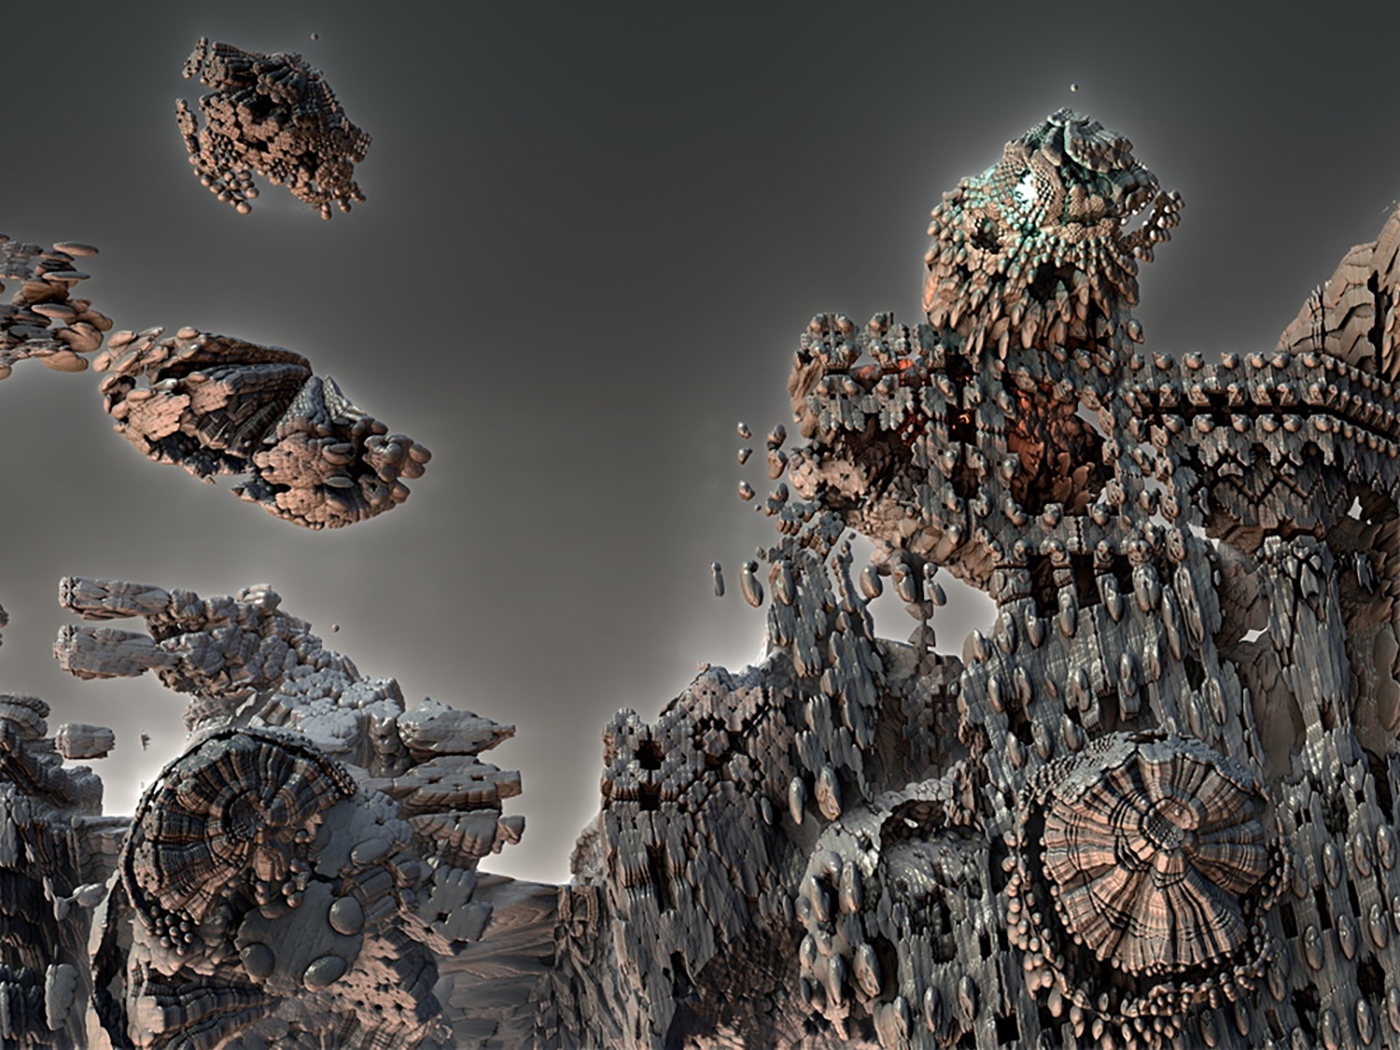 Modeled by voxel slicing a combination of the Mandelbulb, Euler and Sierpinski sets.